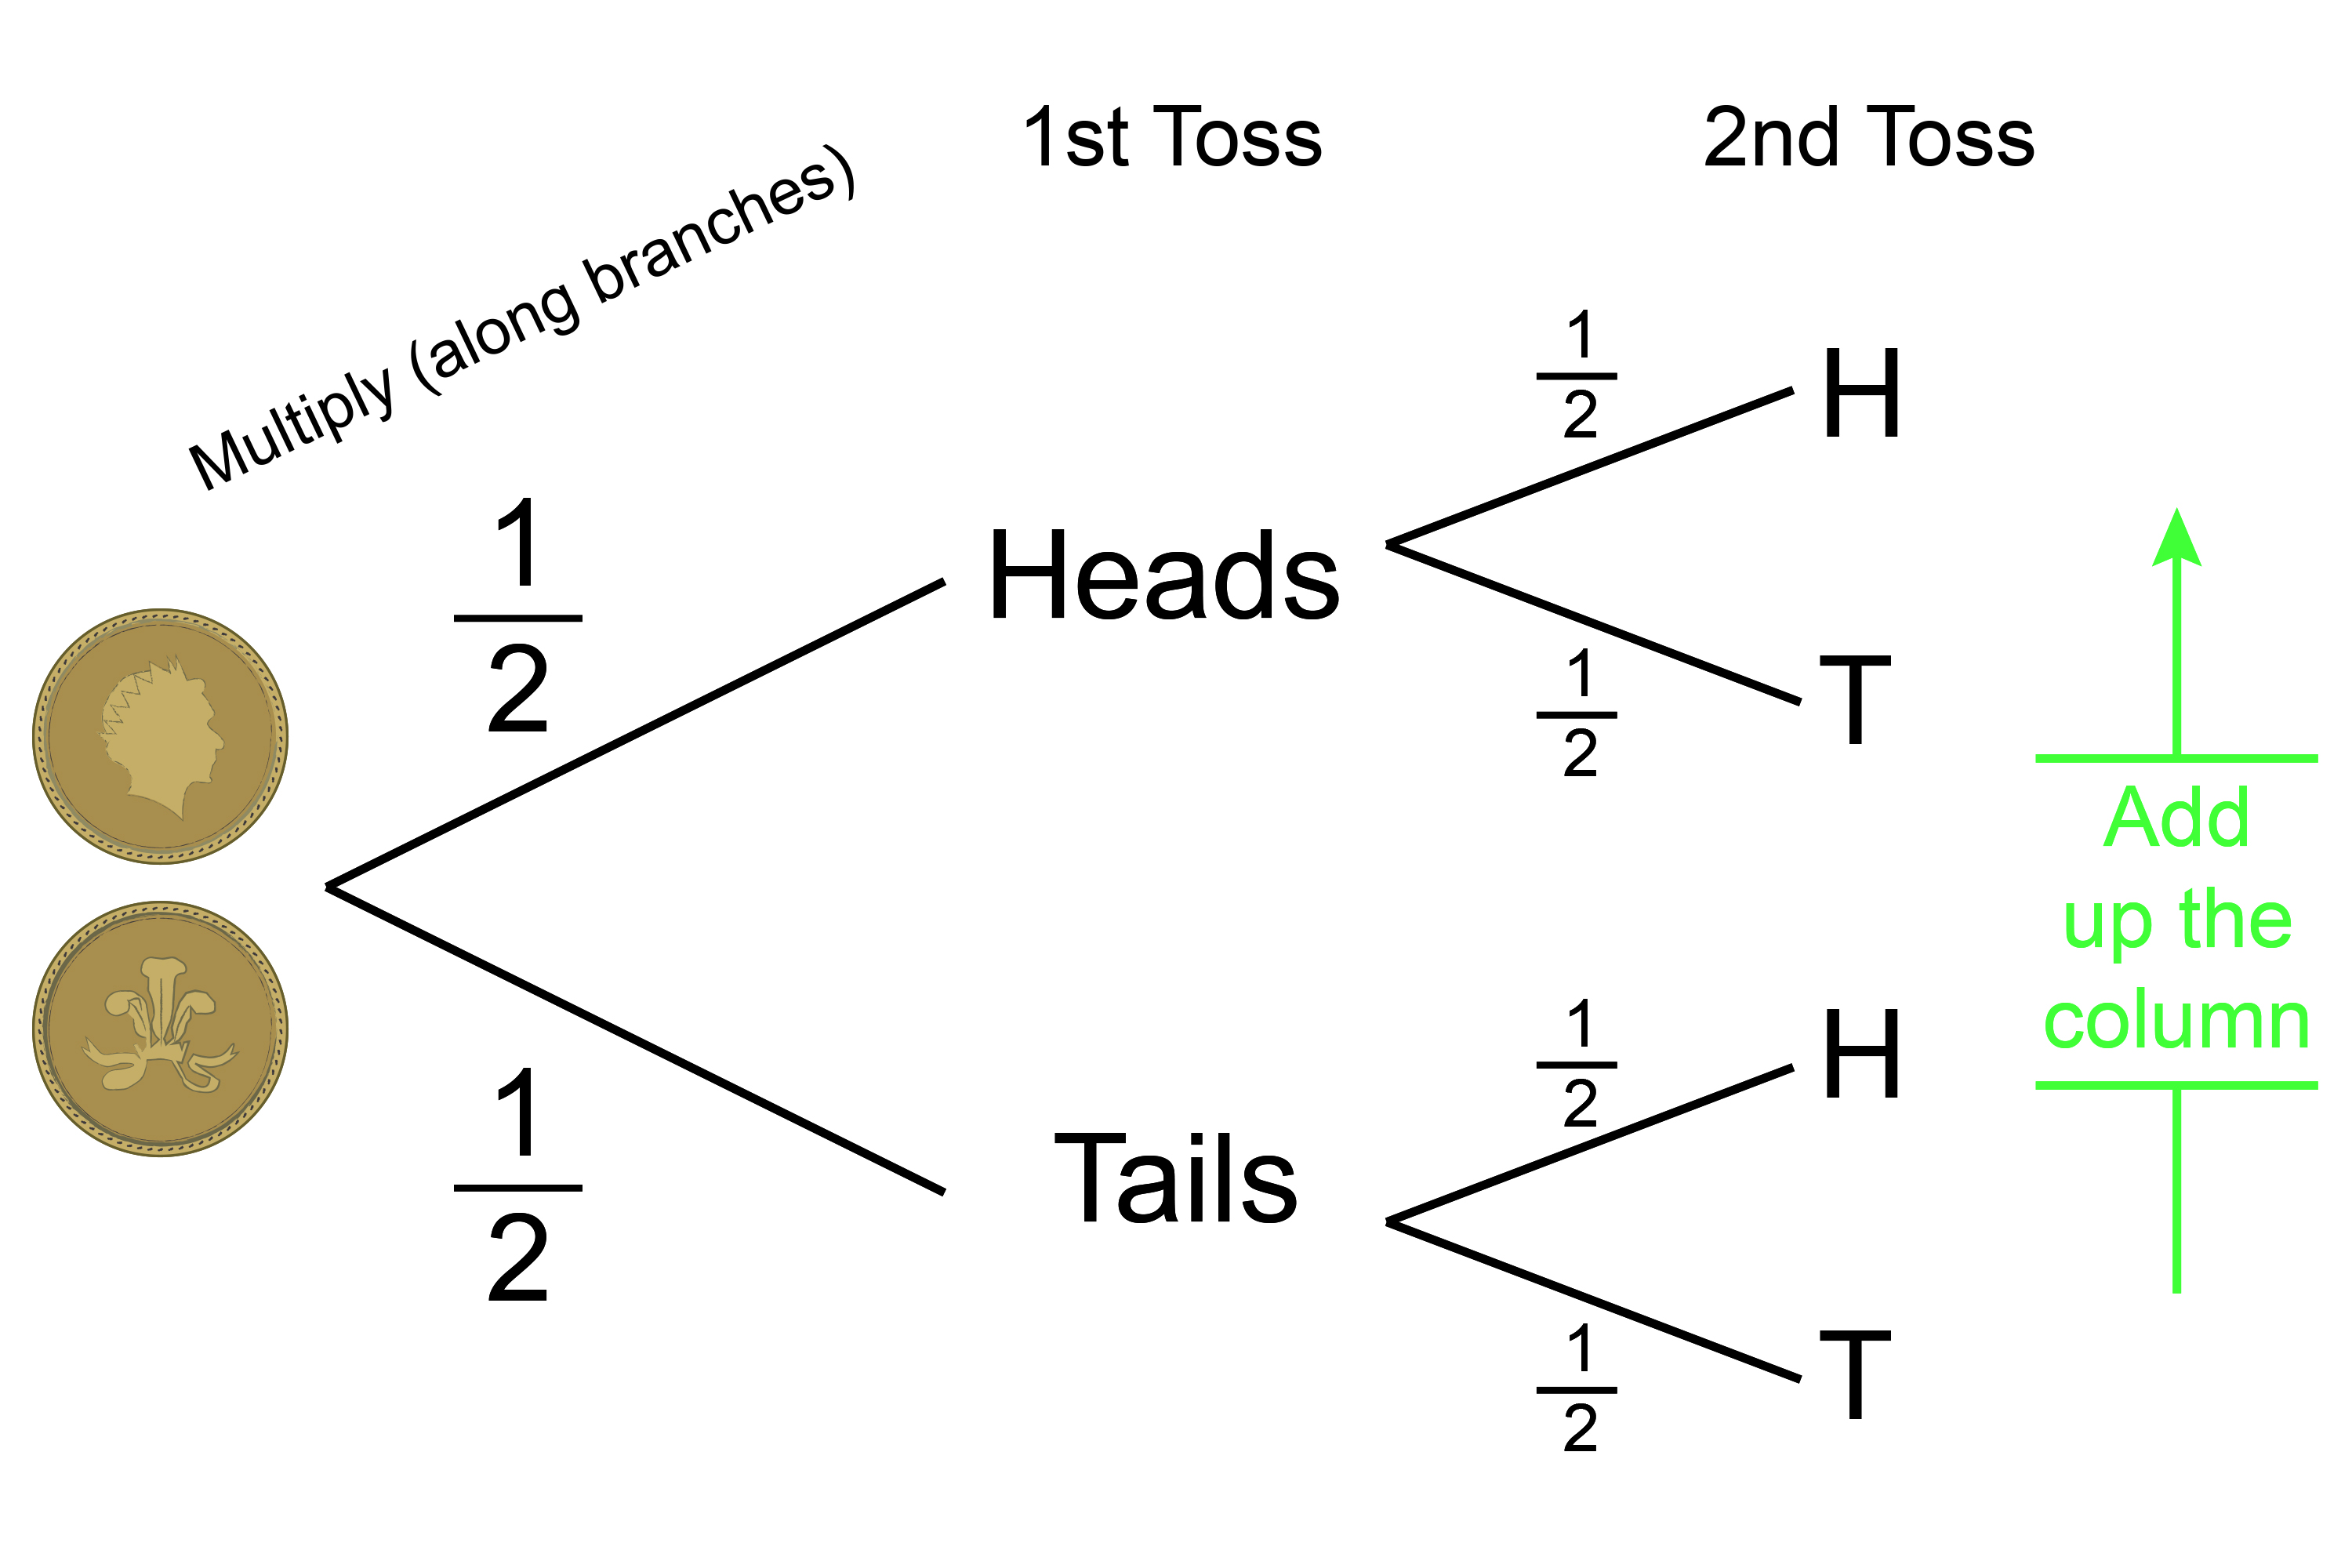 Probability tree of tossing a coin